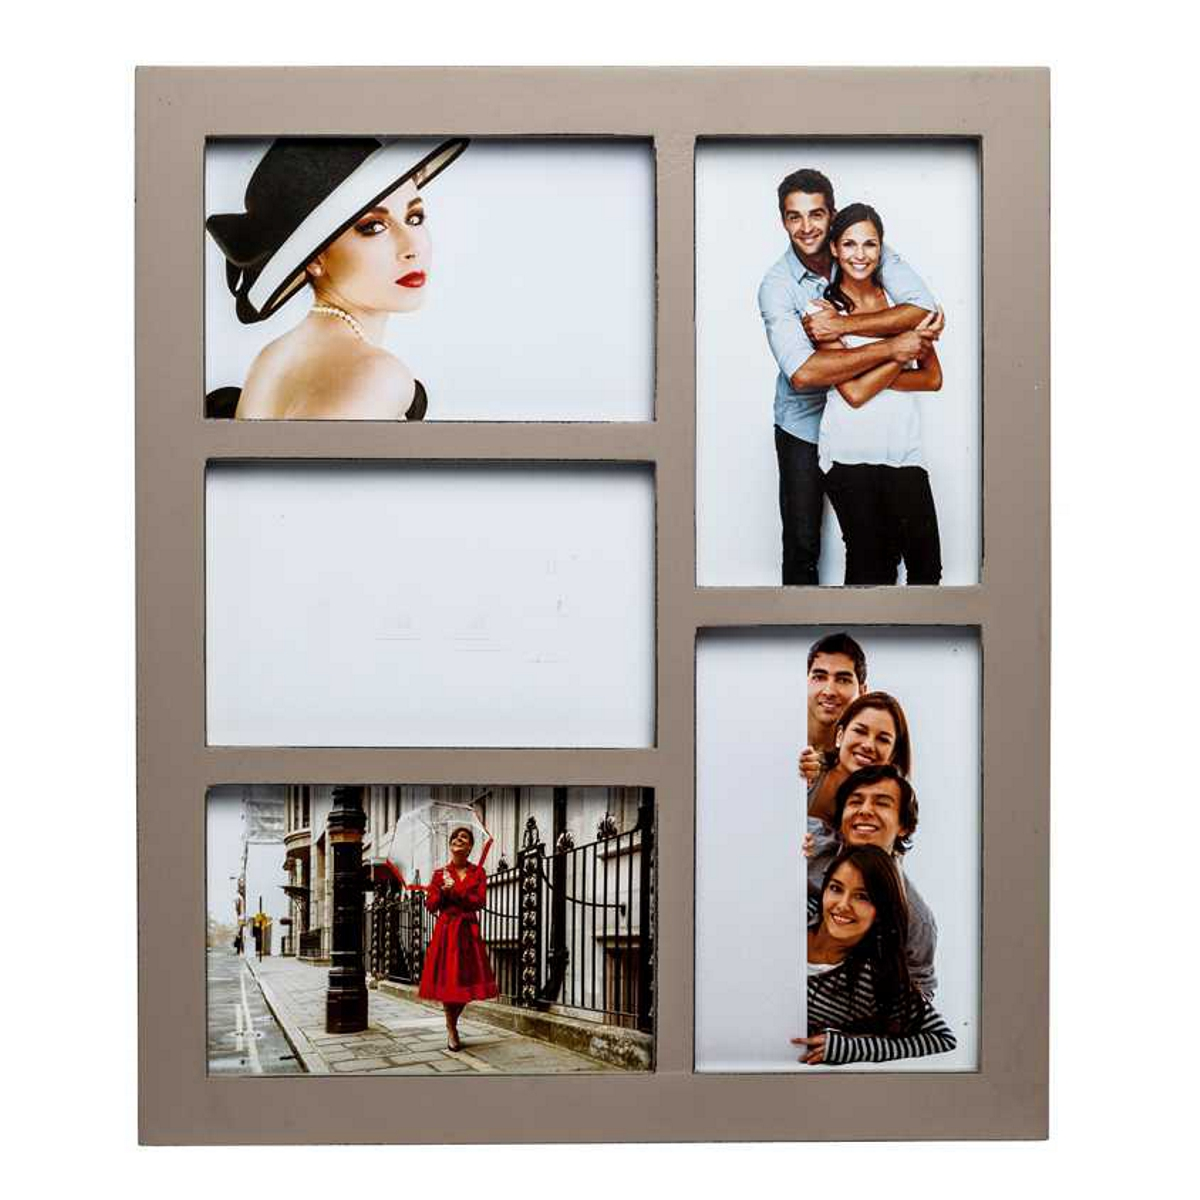 Gallery Brown Five Aperture Multi Photo Frame 35.2 x 30.2 x 3.6 cm